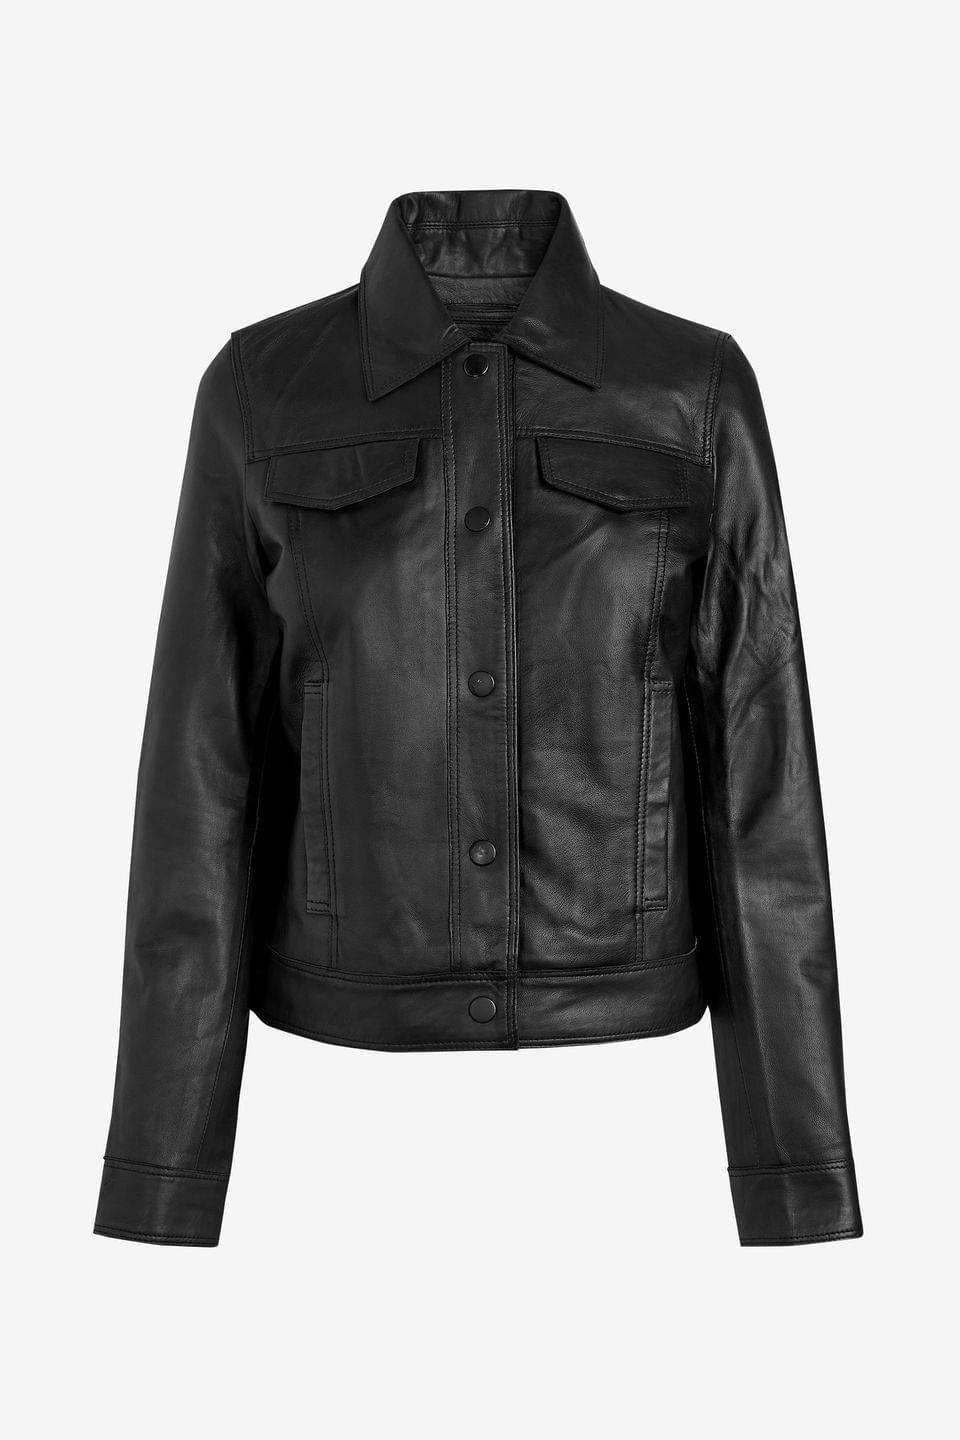 Women's Black Leather Western Jacket